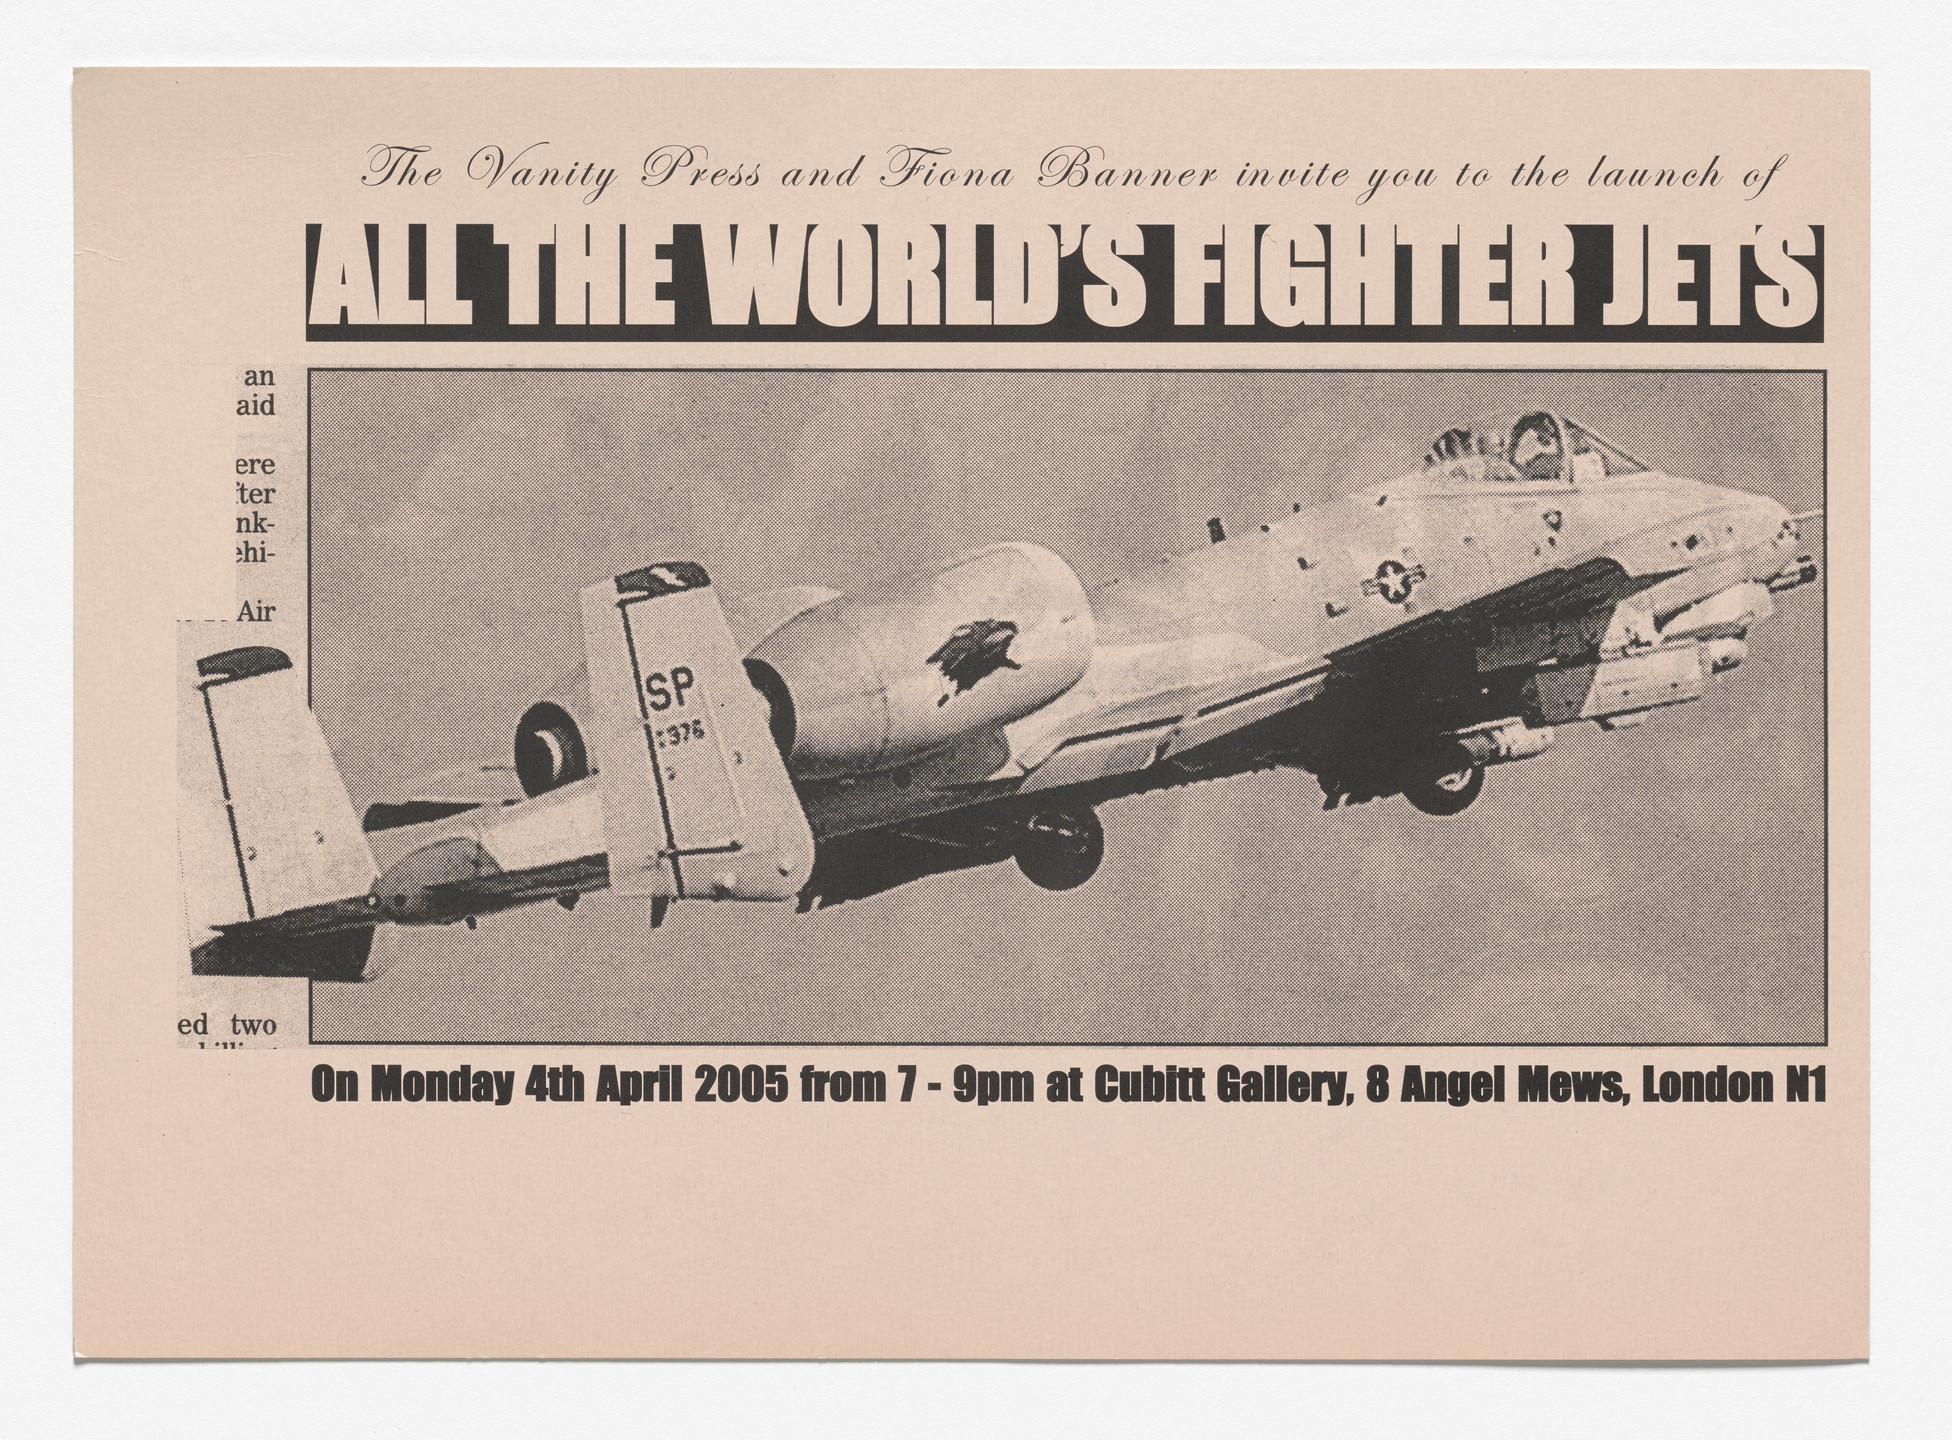 Fiona Banner. All the World's Fighter Plane 2004 Book Launch at Cubitt Gallery. 2005